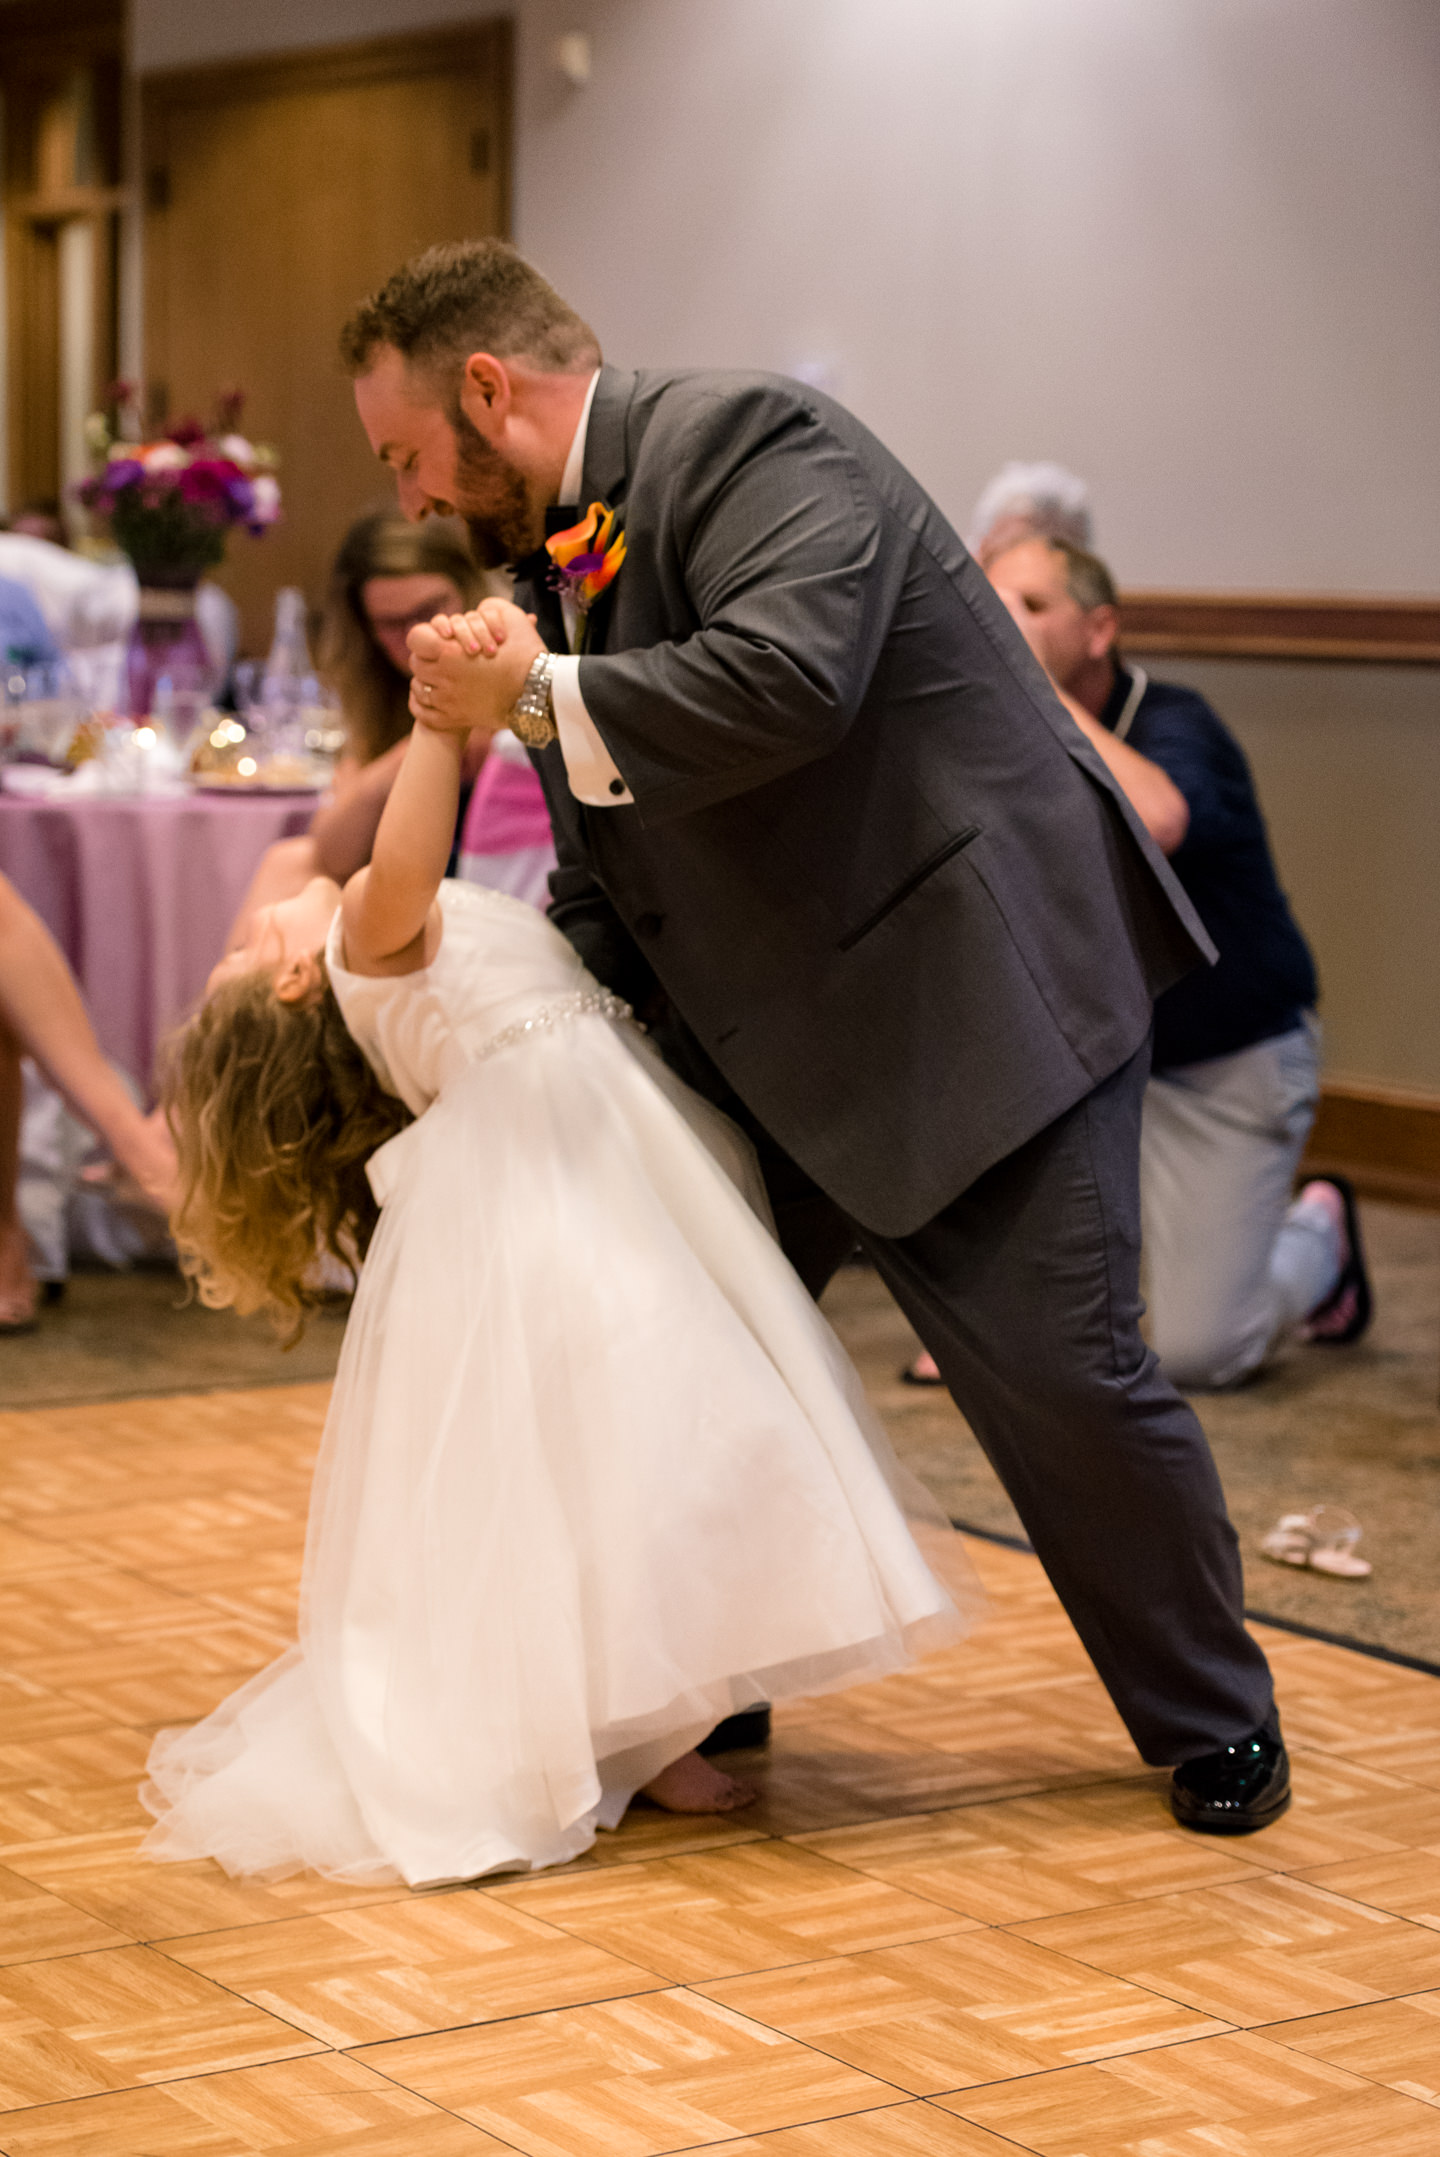 Groom and Daughter Dance during Wedding Reception